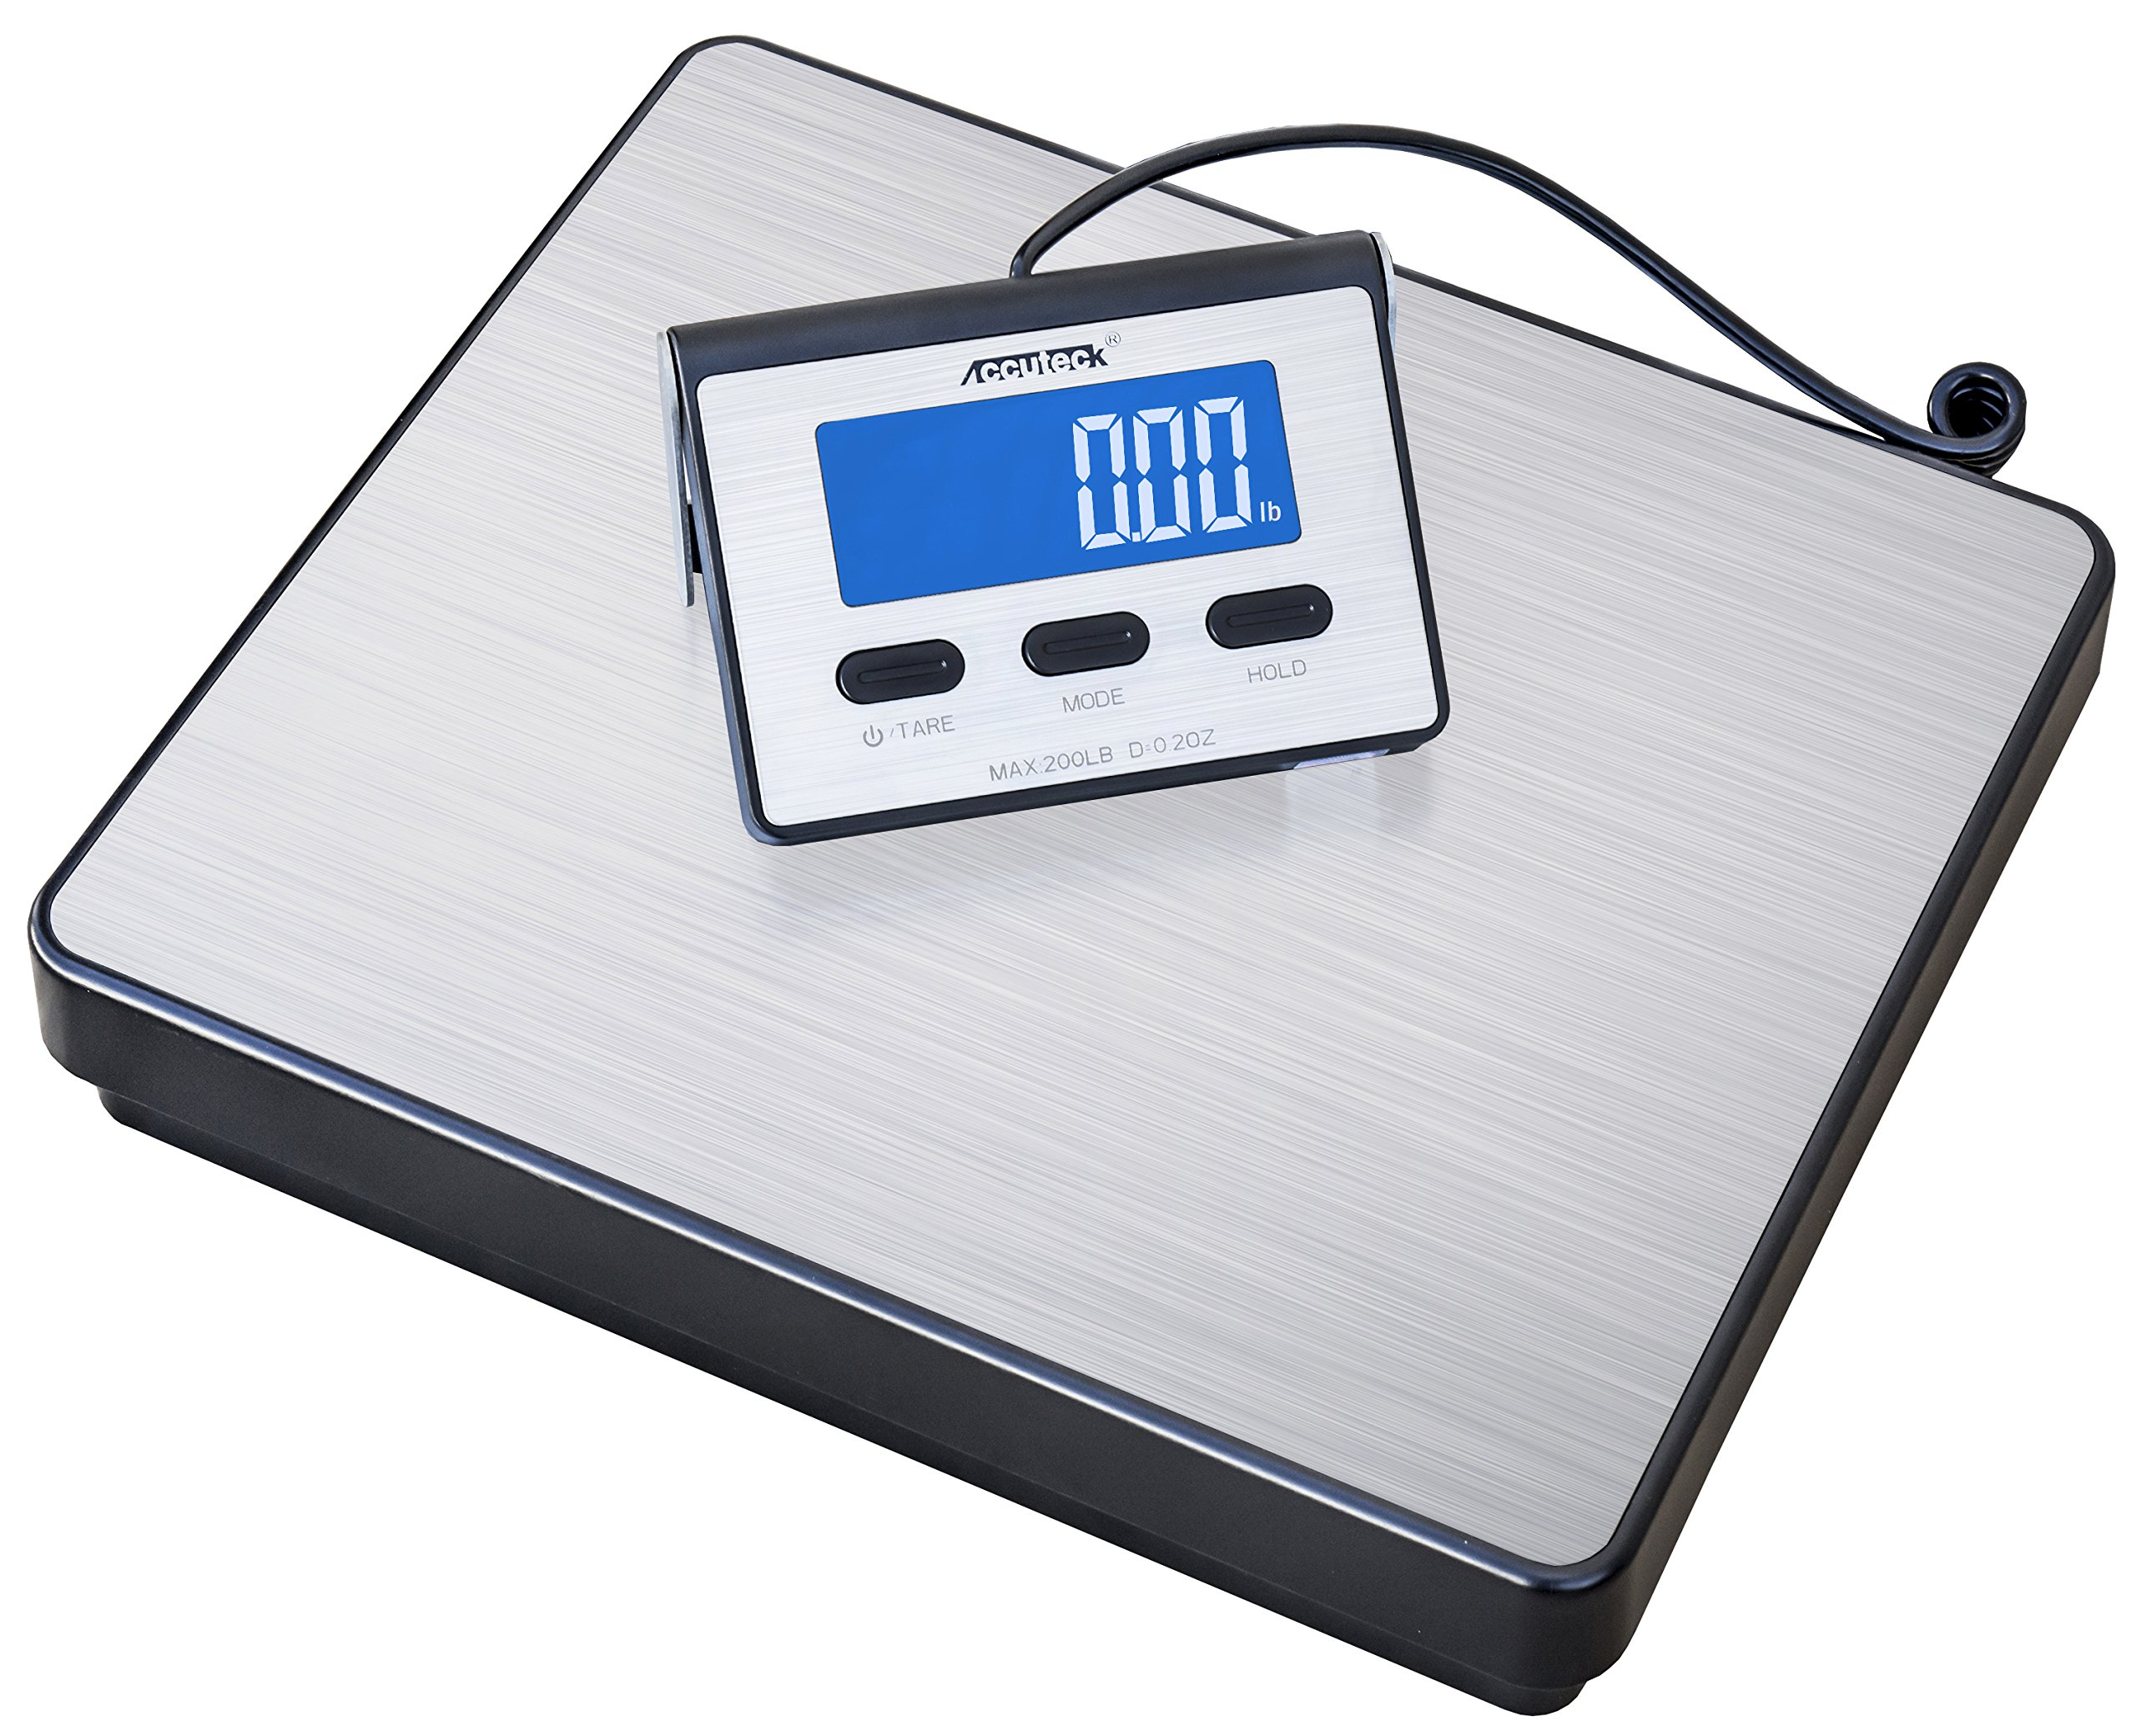 Accuteck A-BC200 200LB x 0.2 OZ Digital Heavy Duty Shipping Postal Scale, Stainless Steel